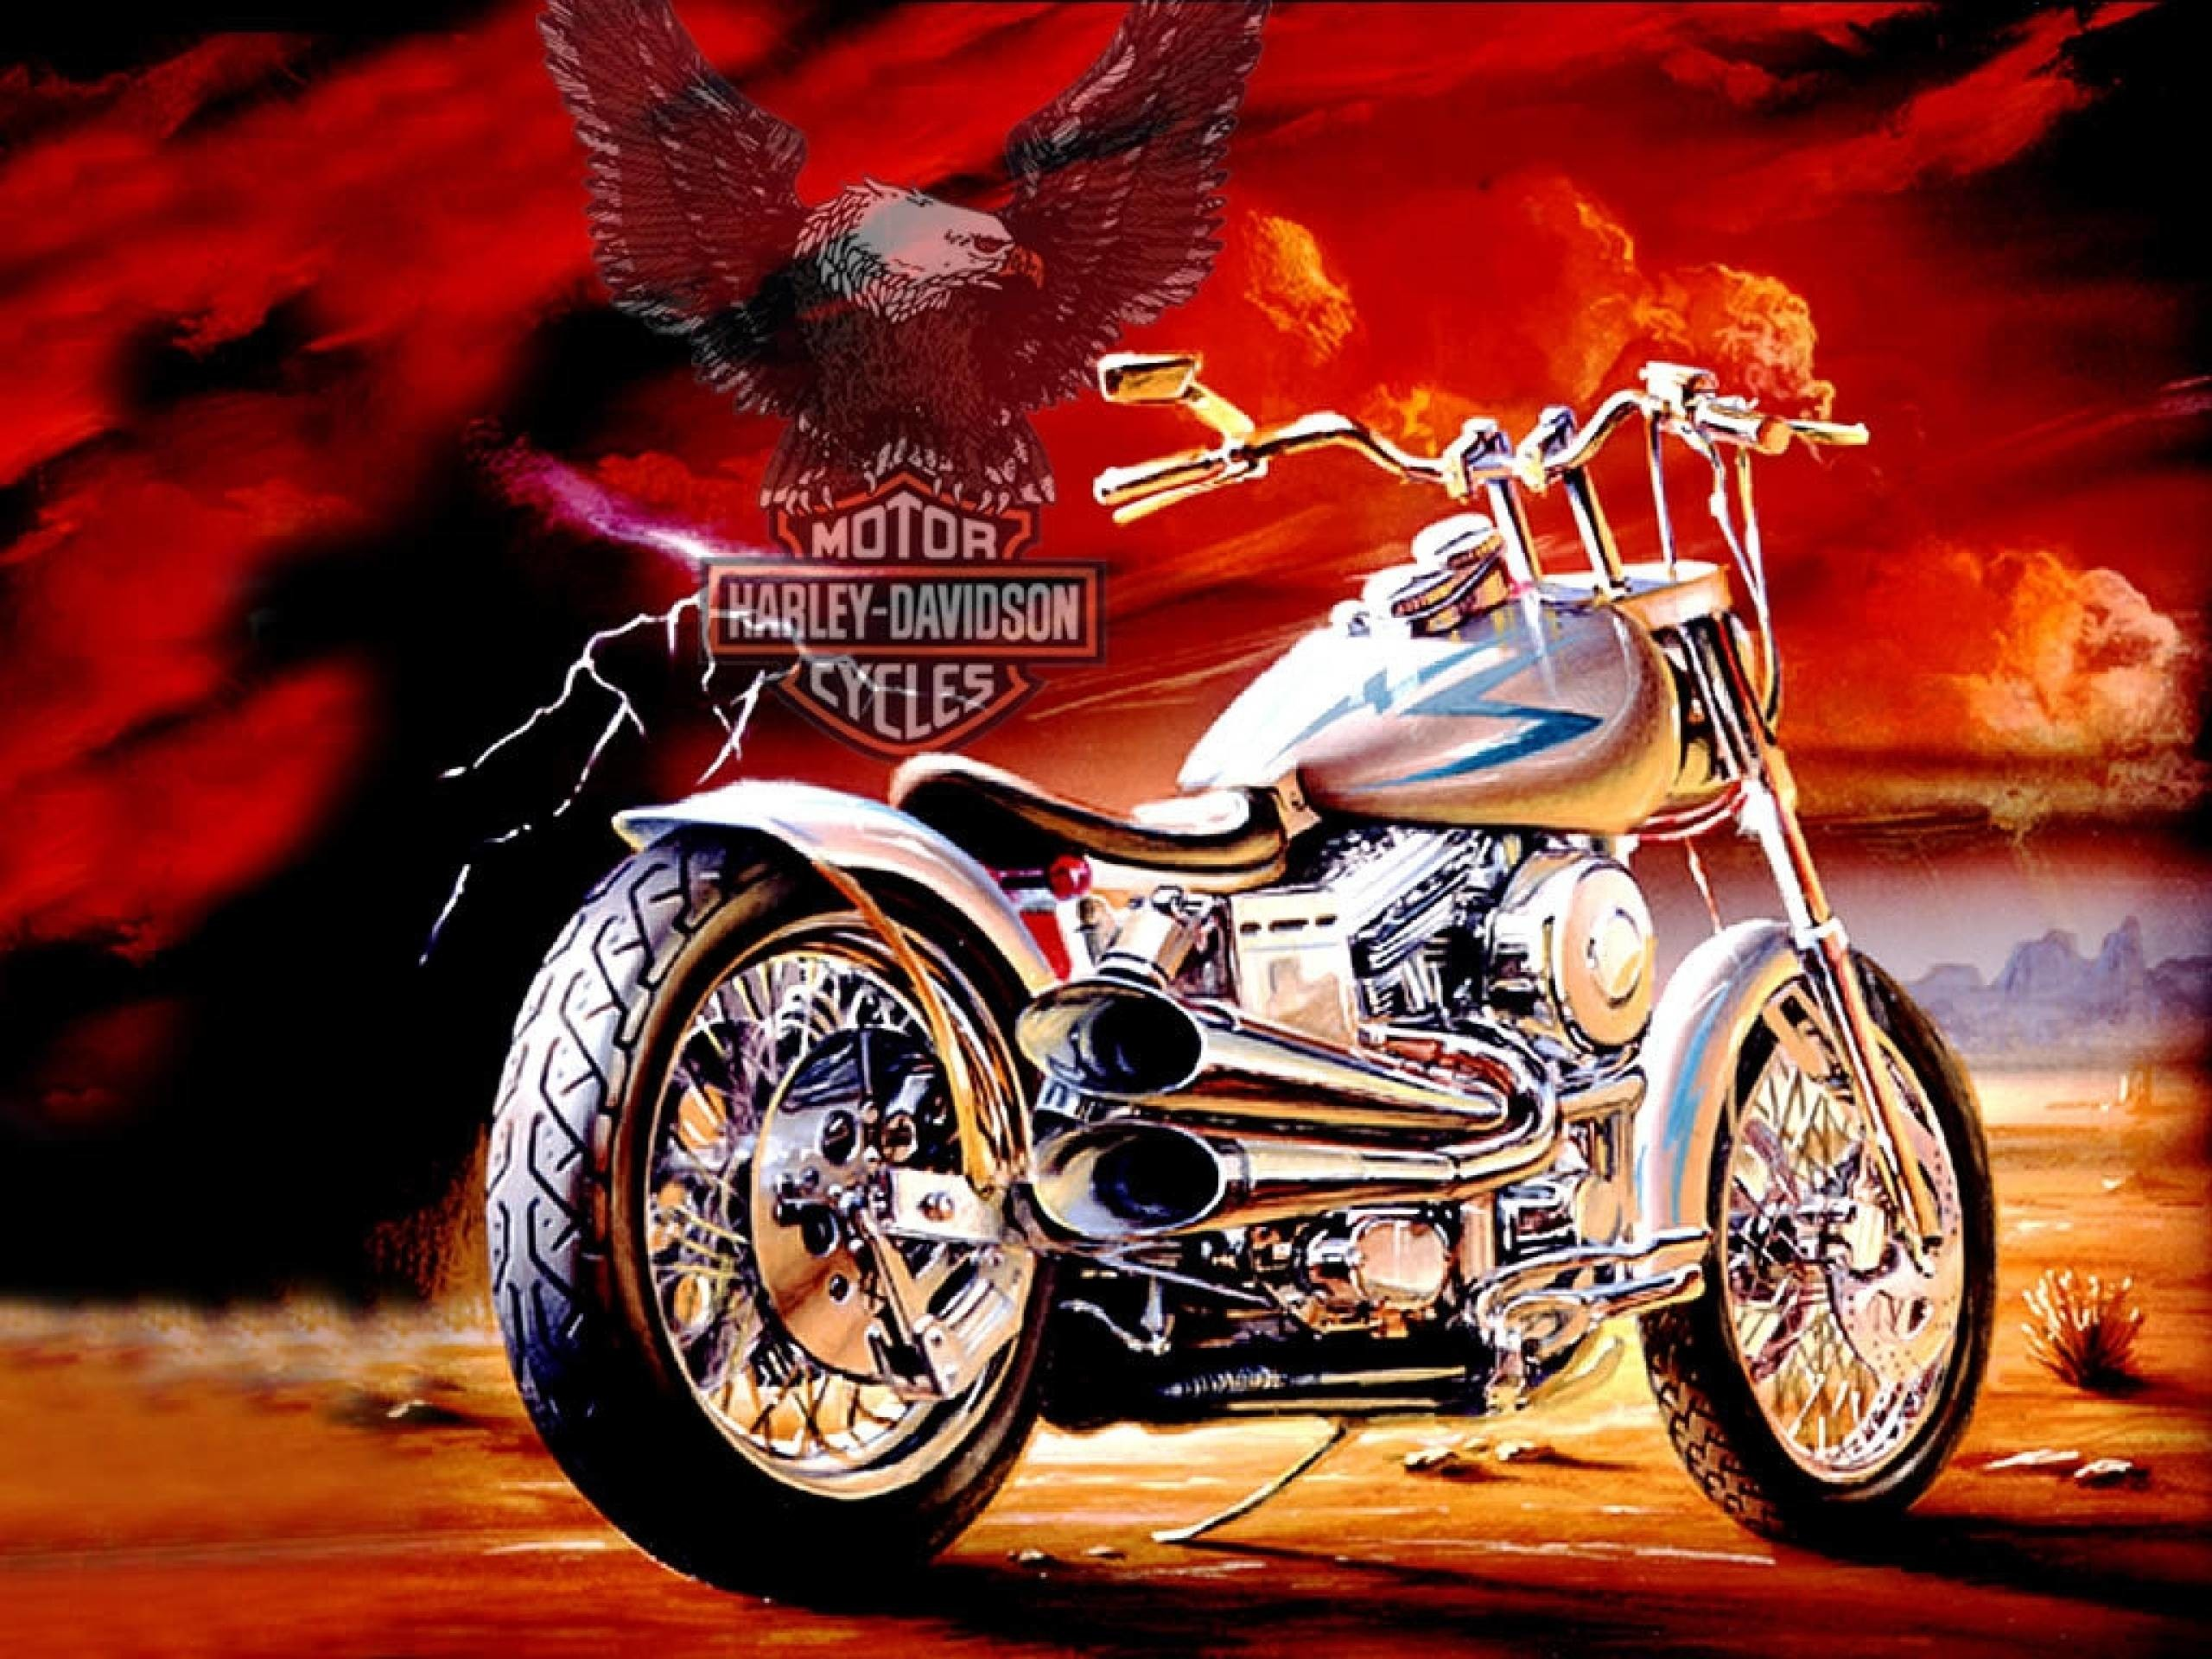 Res: 2560x1920, Motorcycles Wallpapers / Harley Davidson Wallpapers Download HD .